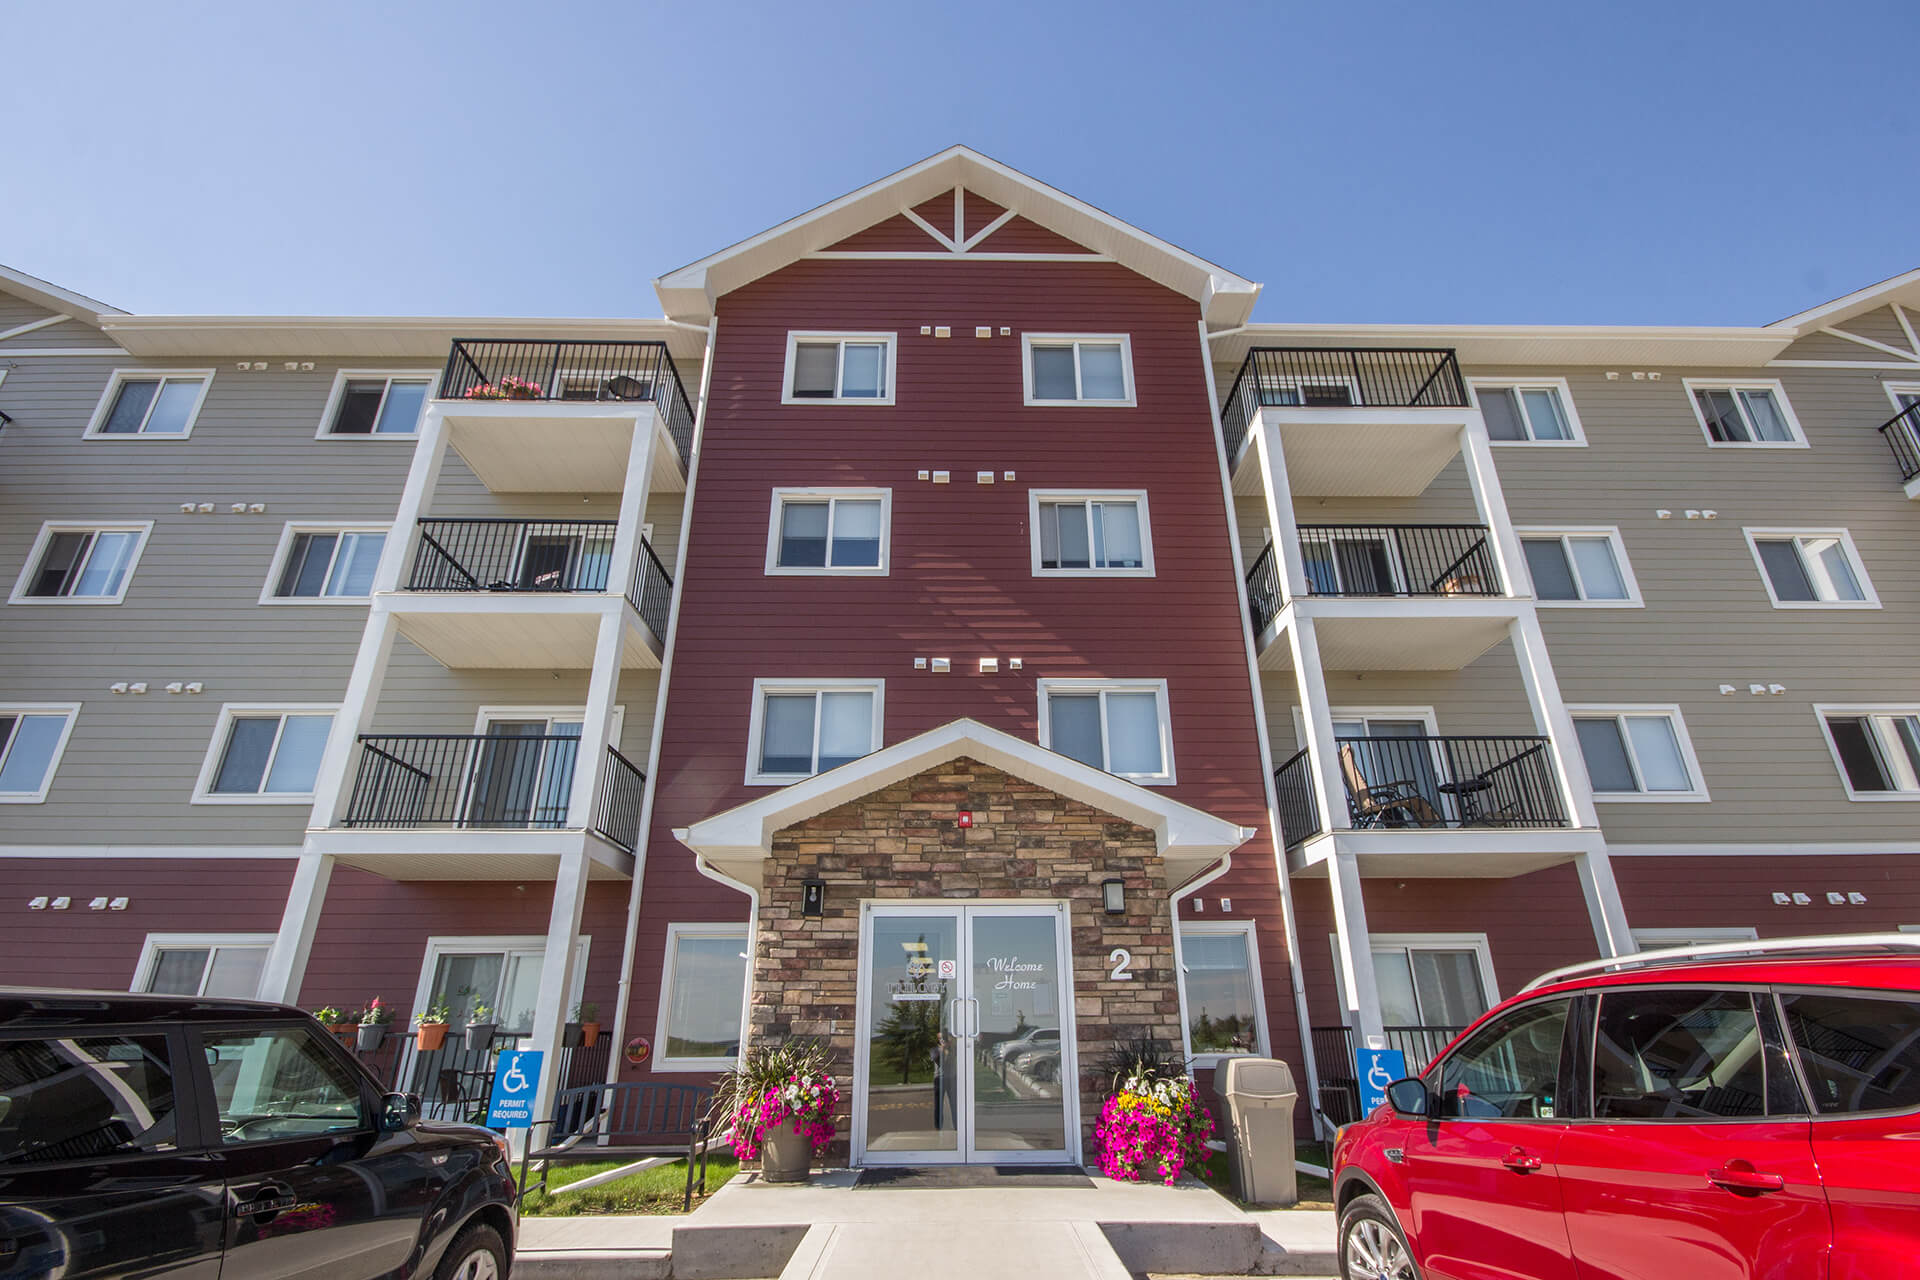 Image of the exterior of Trilogy Apartments